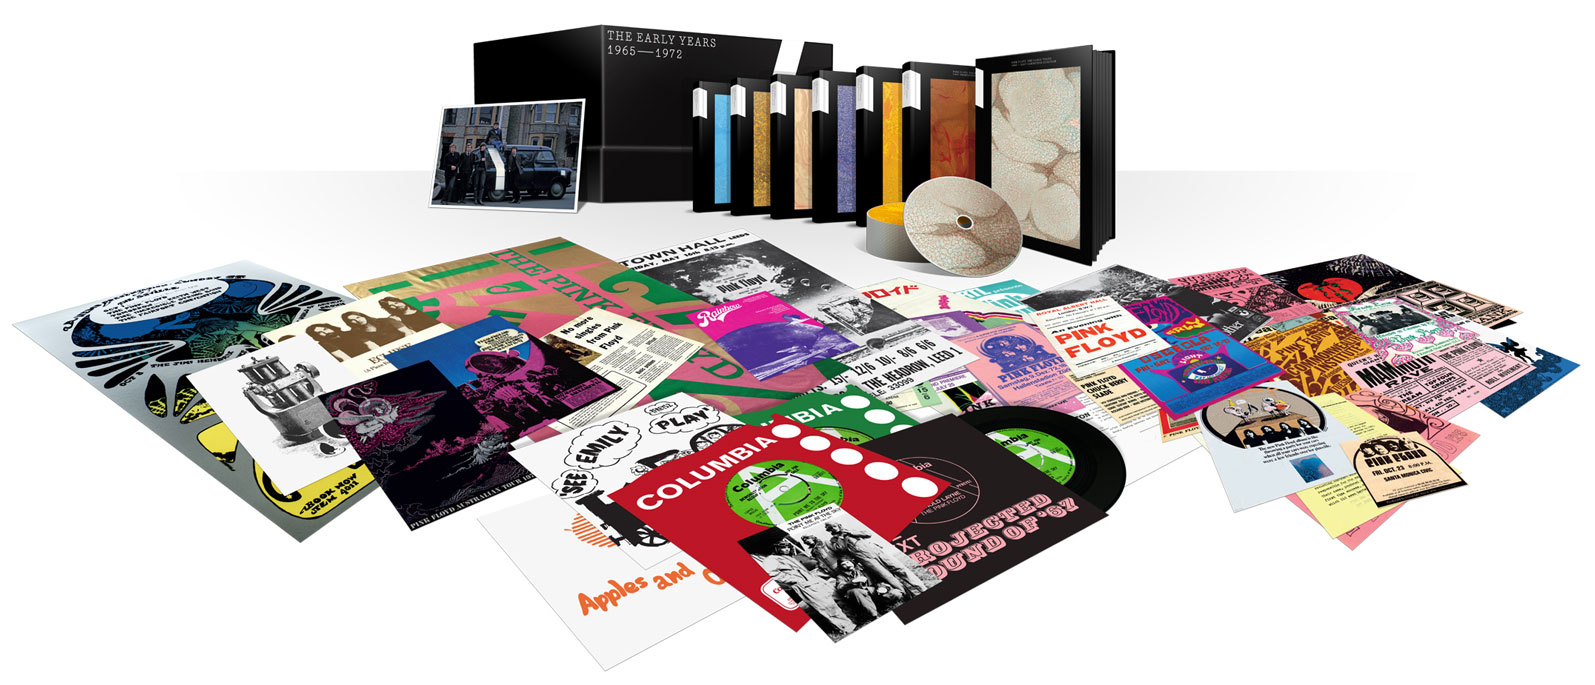 Pink Floyd / The Early Years 1965-1972 box set